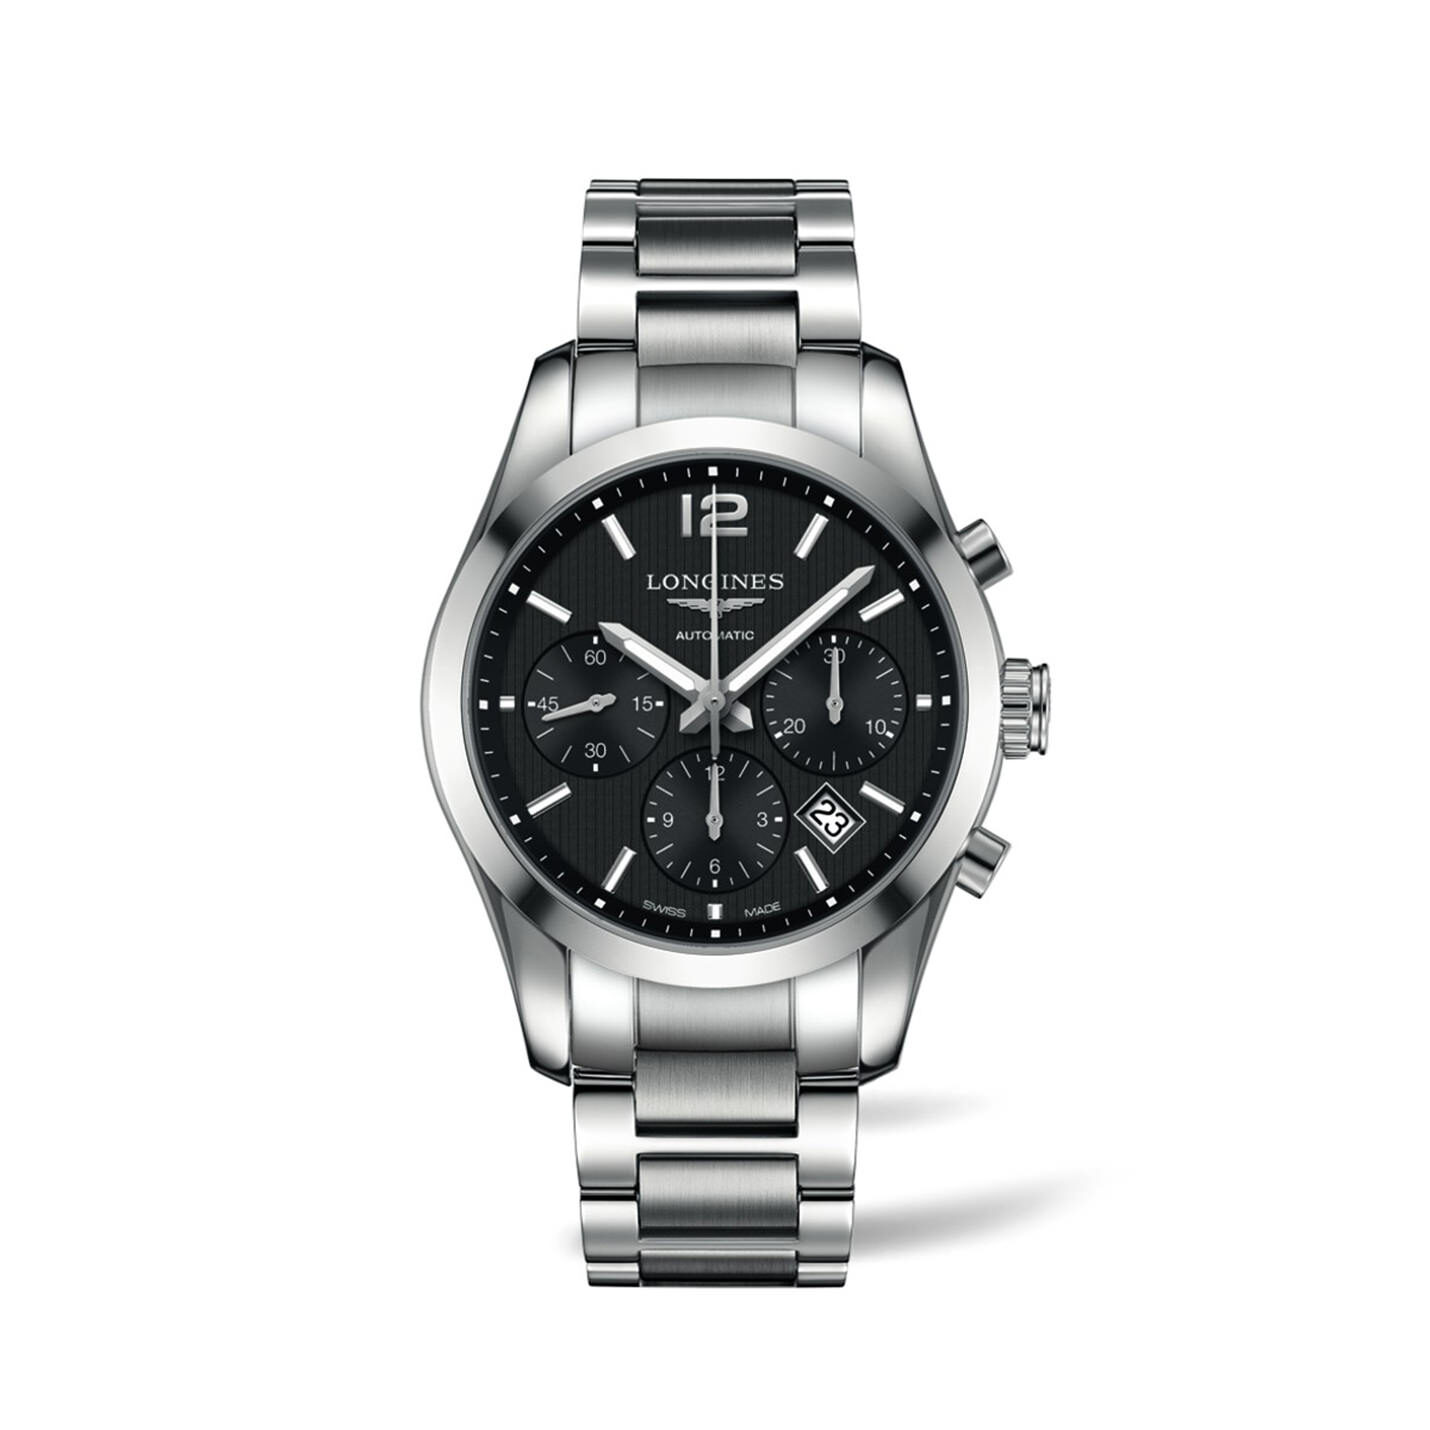 Longines Conquest Classic Collection – Black Dial Chronograph